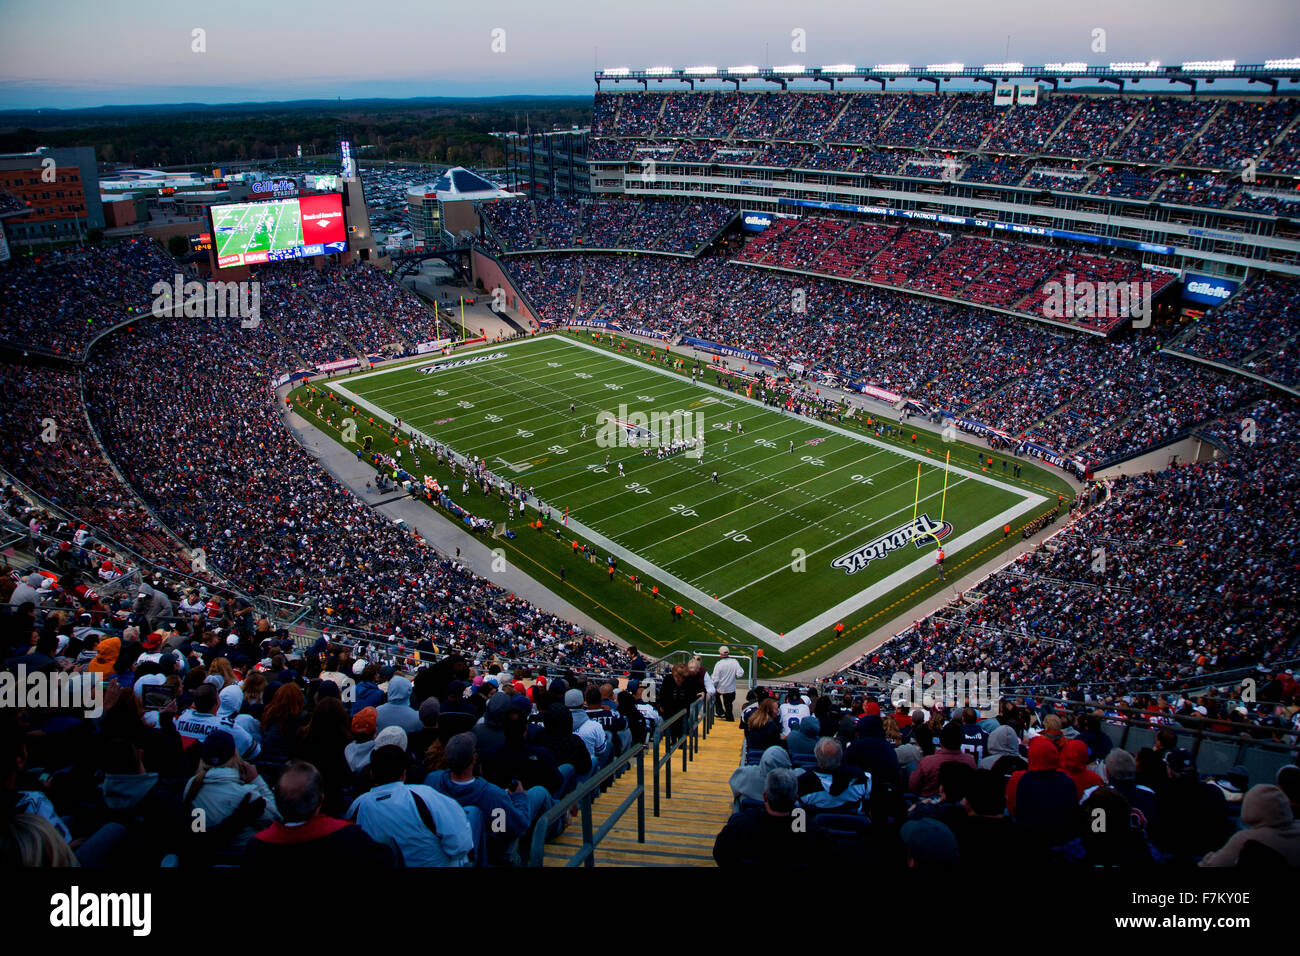 b60737c8804 Elevated view of Gillette Stadium, home of Super Bowl champs, New England  Patriots, NFL Team play against Dallas Cowboys,October 16, 2011,  Foxborough, ...